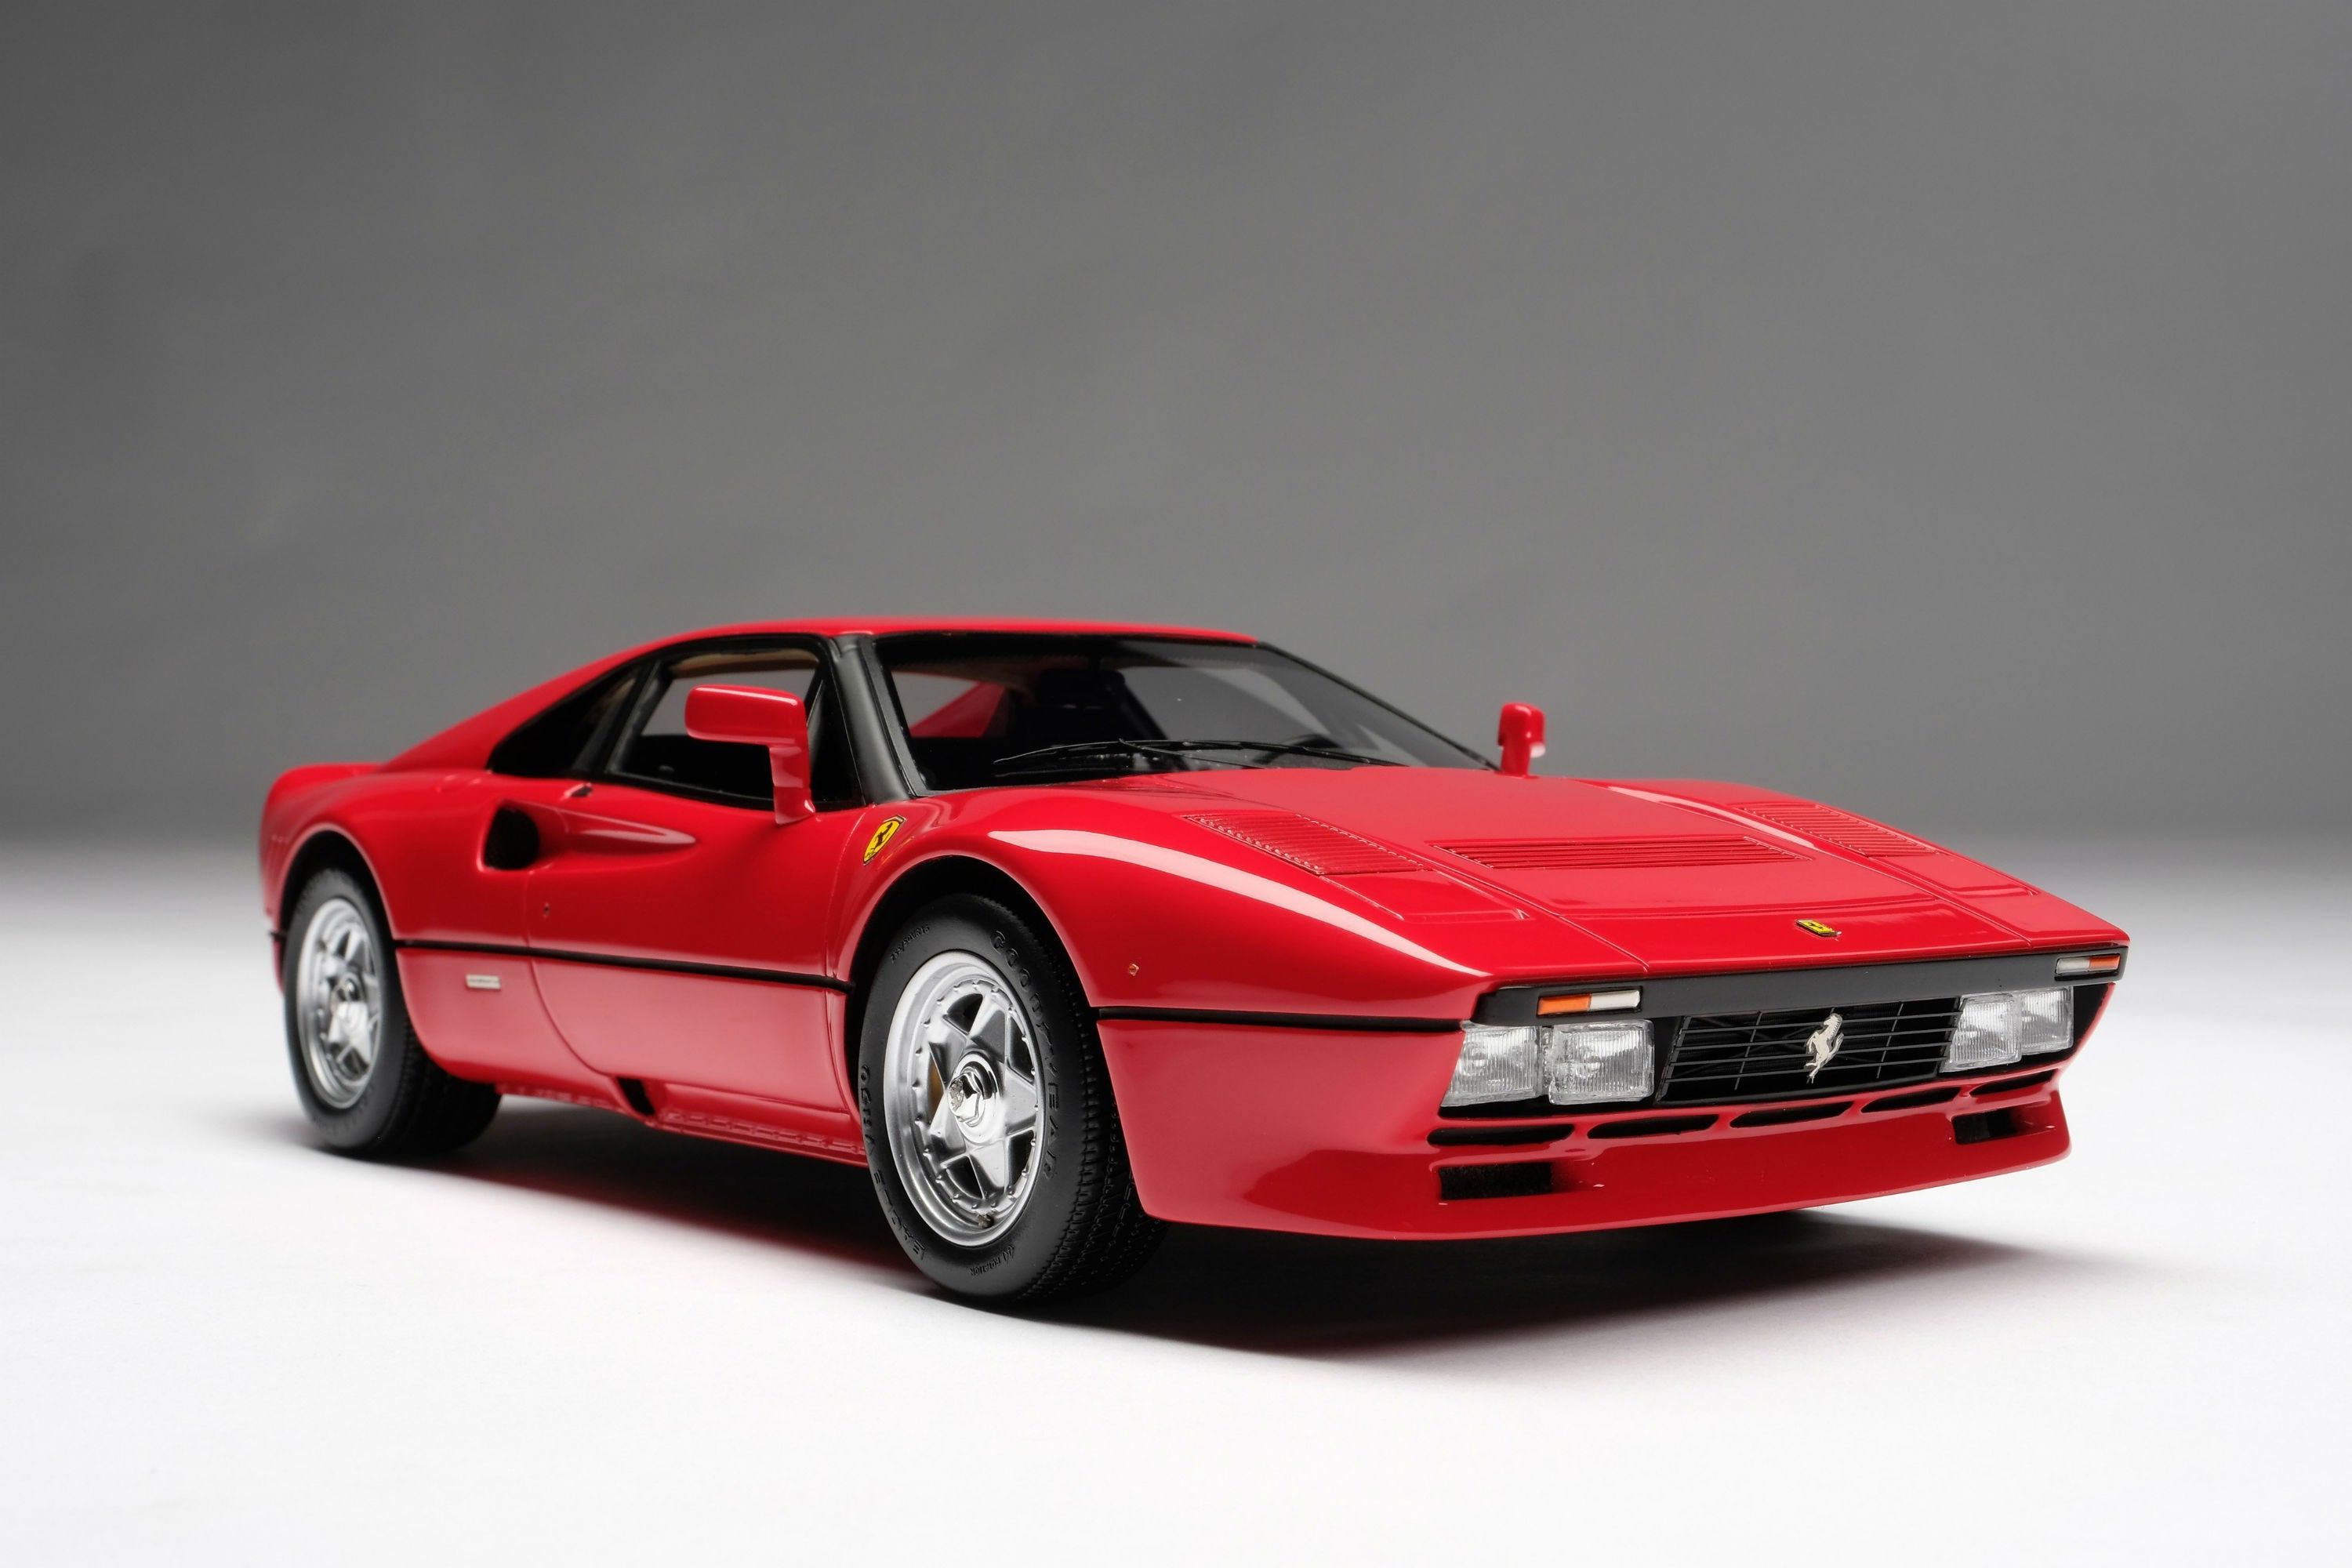 Ferrari 288 GTO (1984) | 1:18 Scale Model Car by Amalgam Collection | Front Quarter